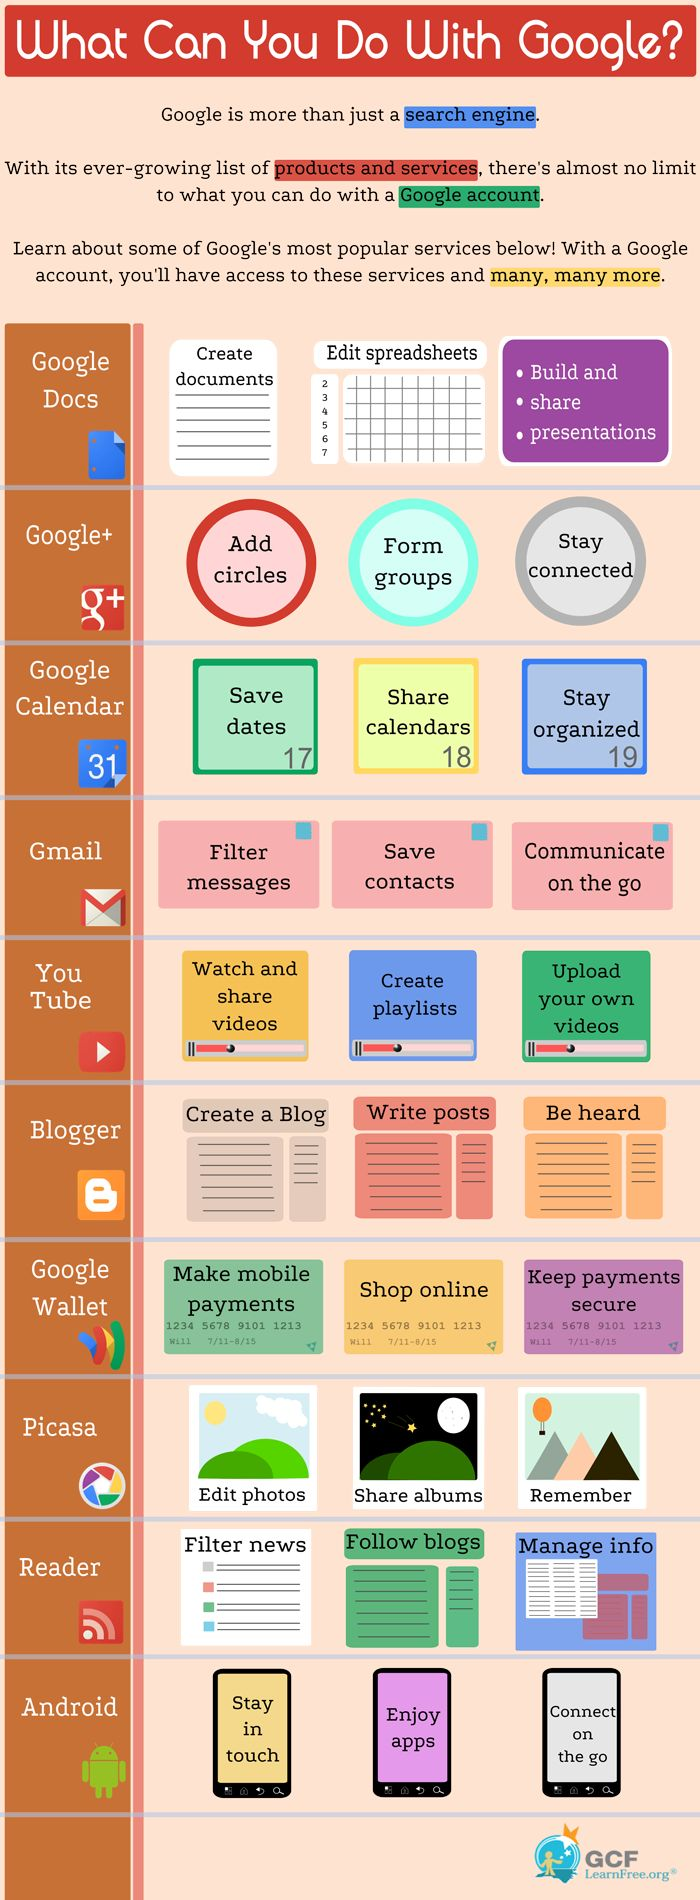 What can you do with Google? #infografia #infographic